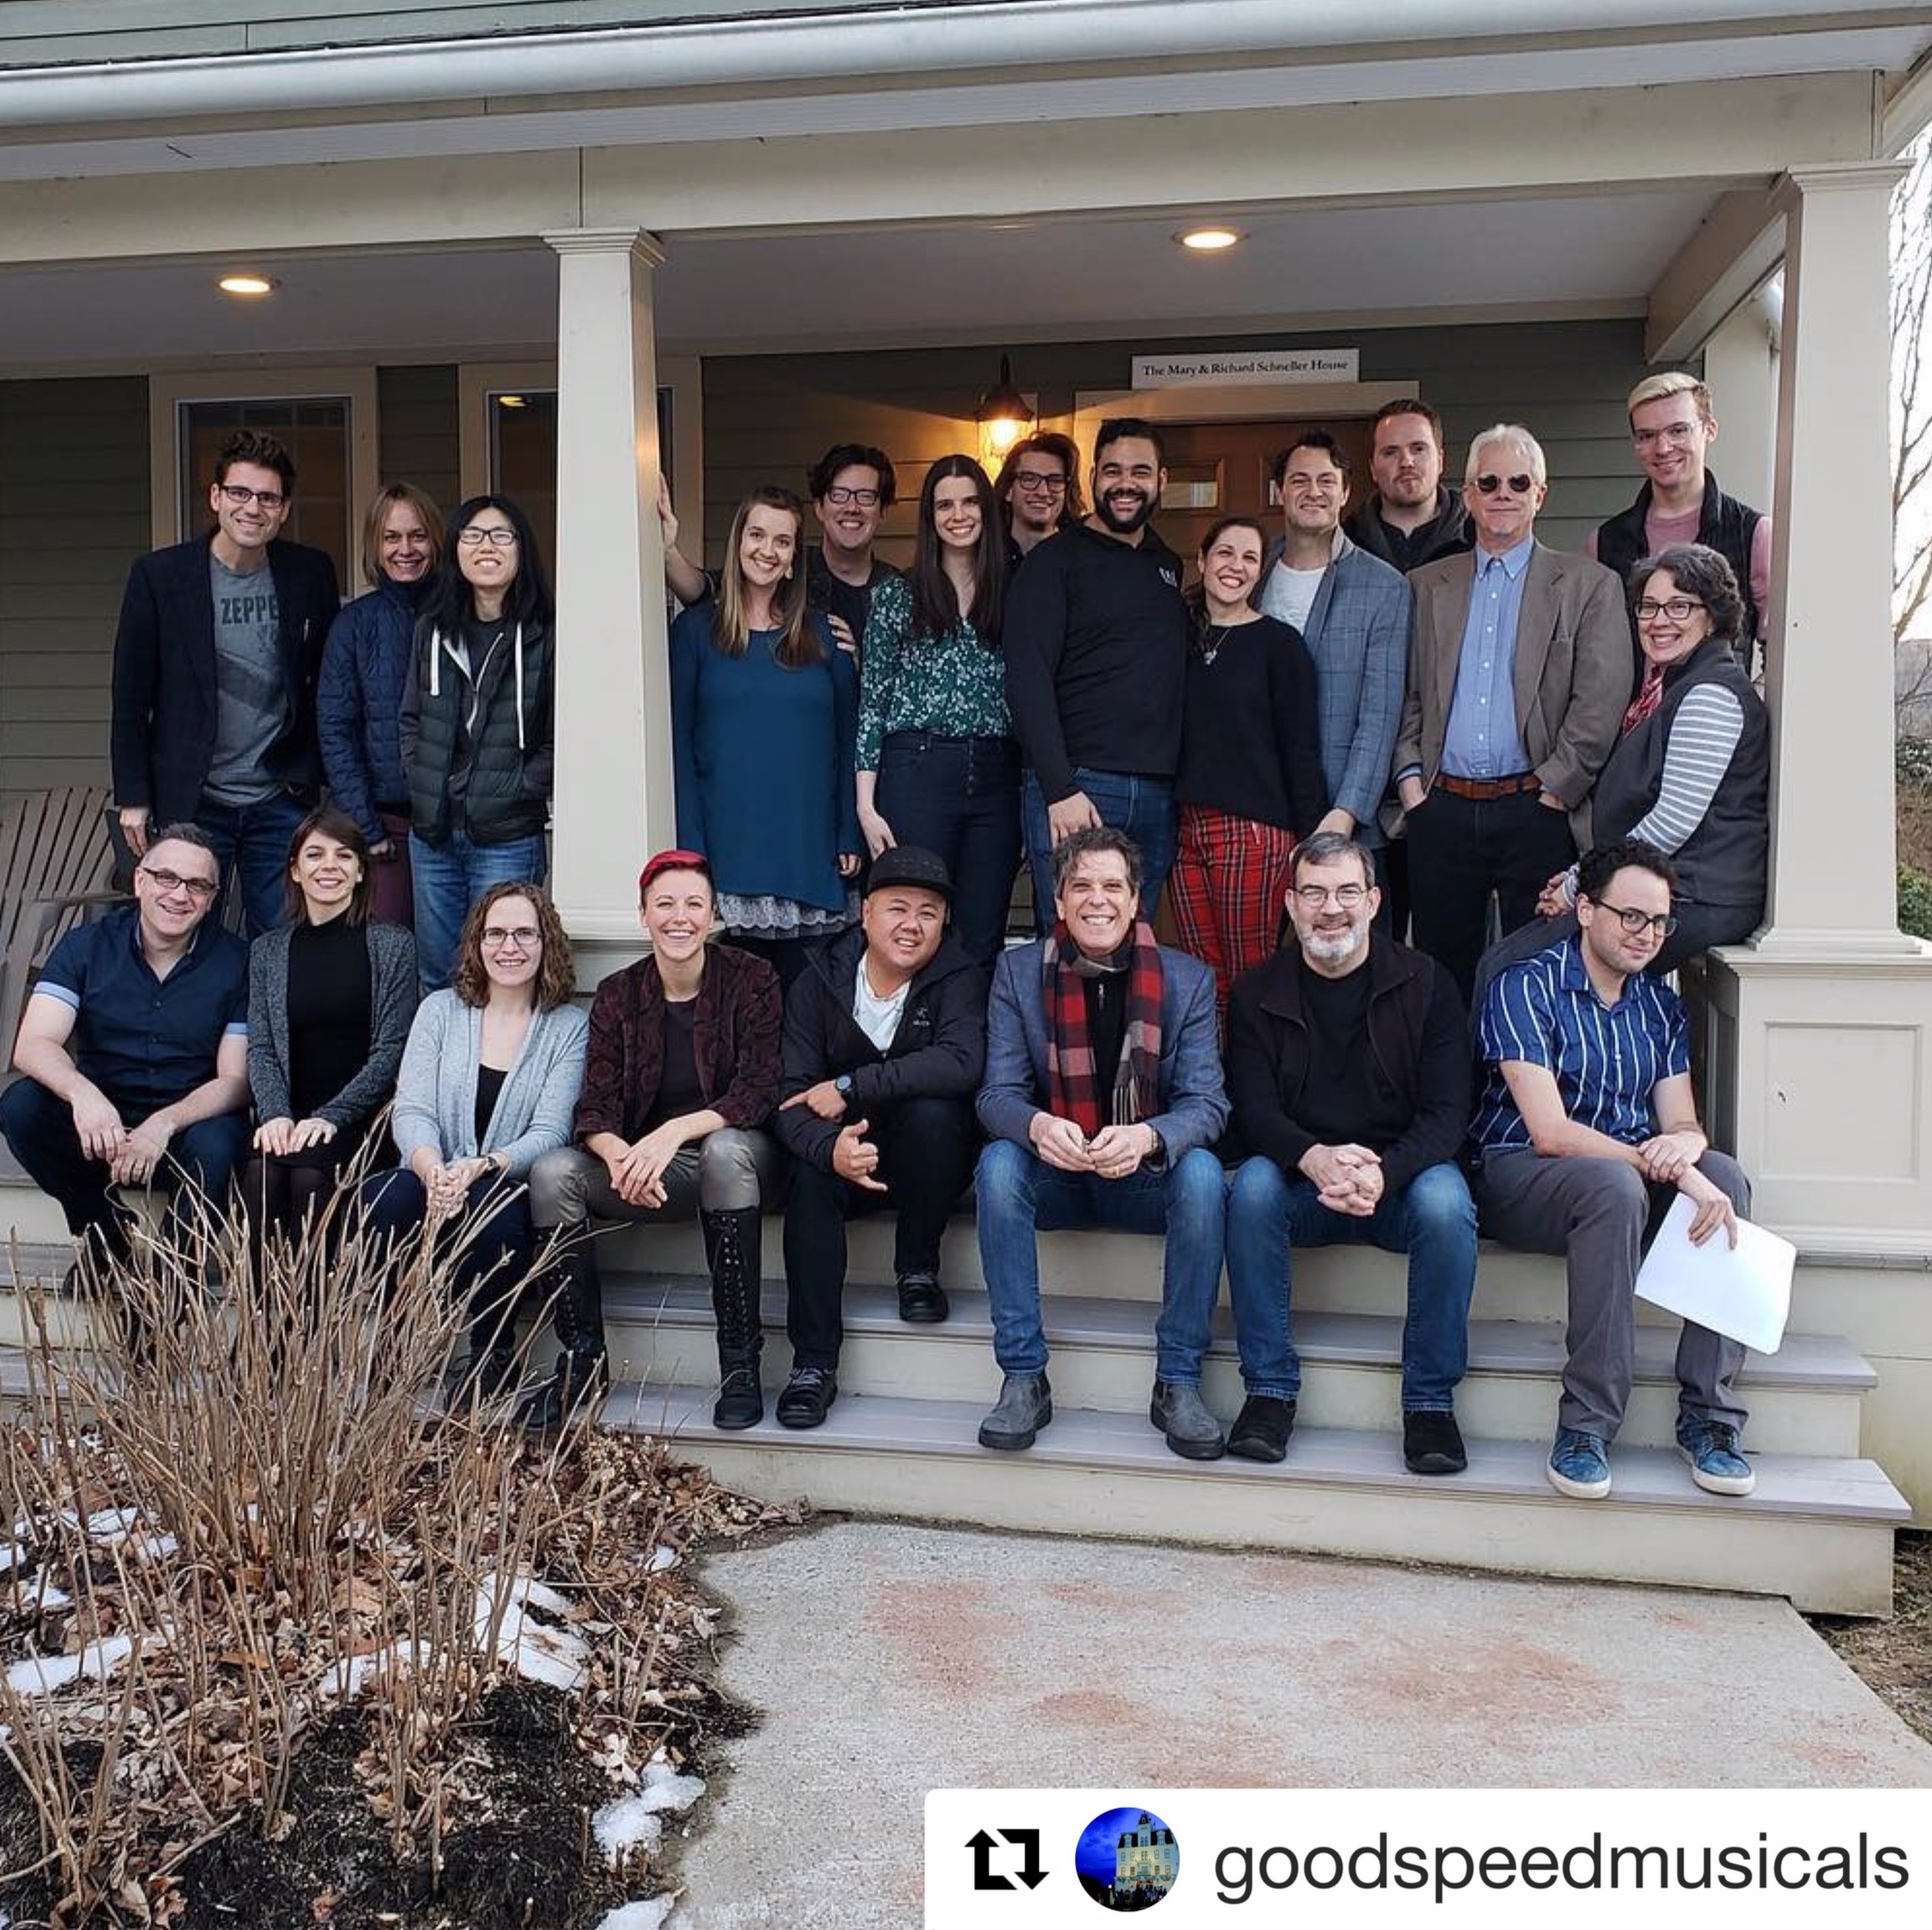 Johnny Mercer Writers Colony at Goodspeed Musicals 2019